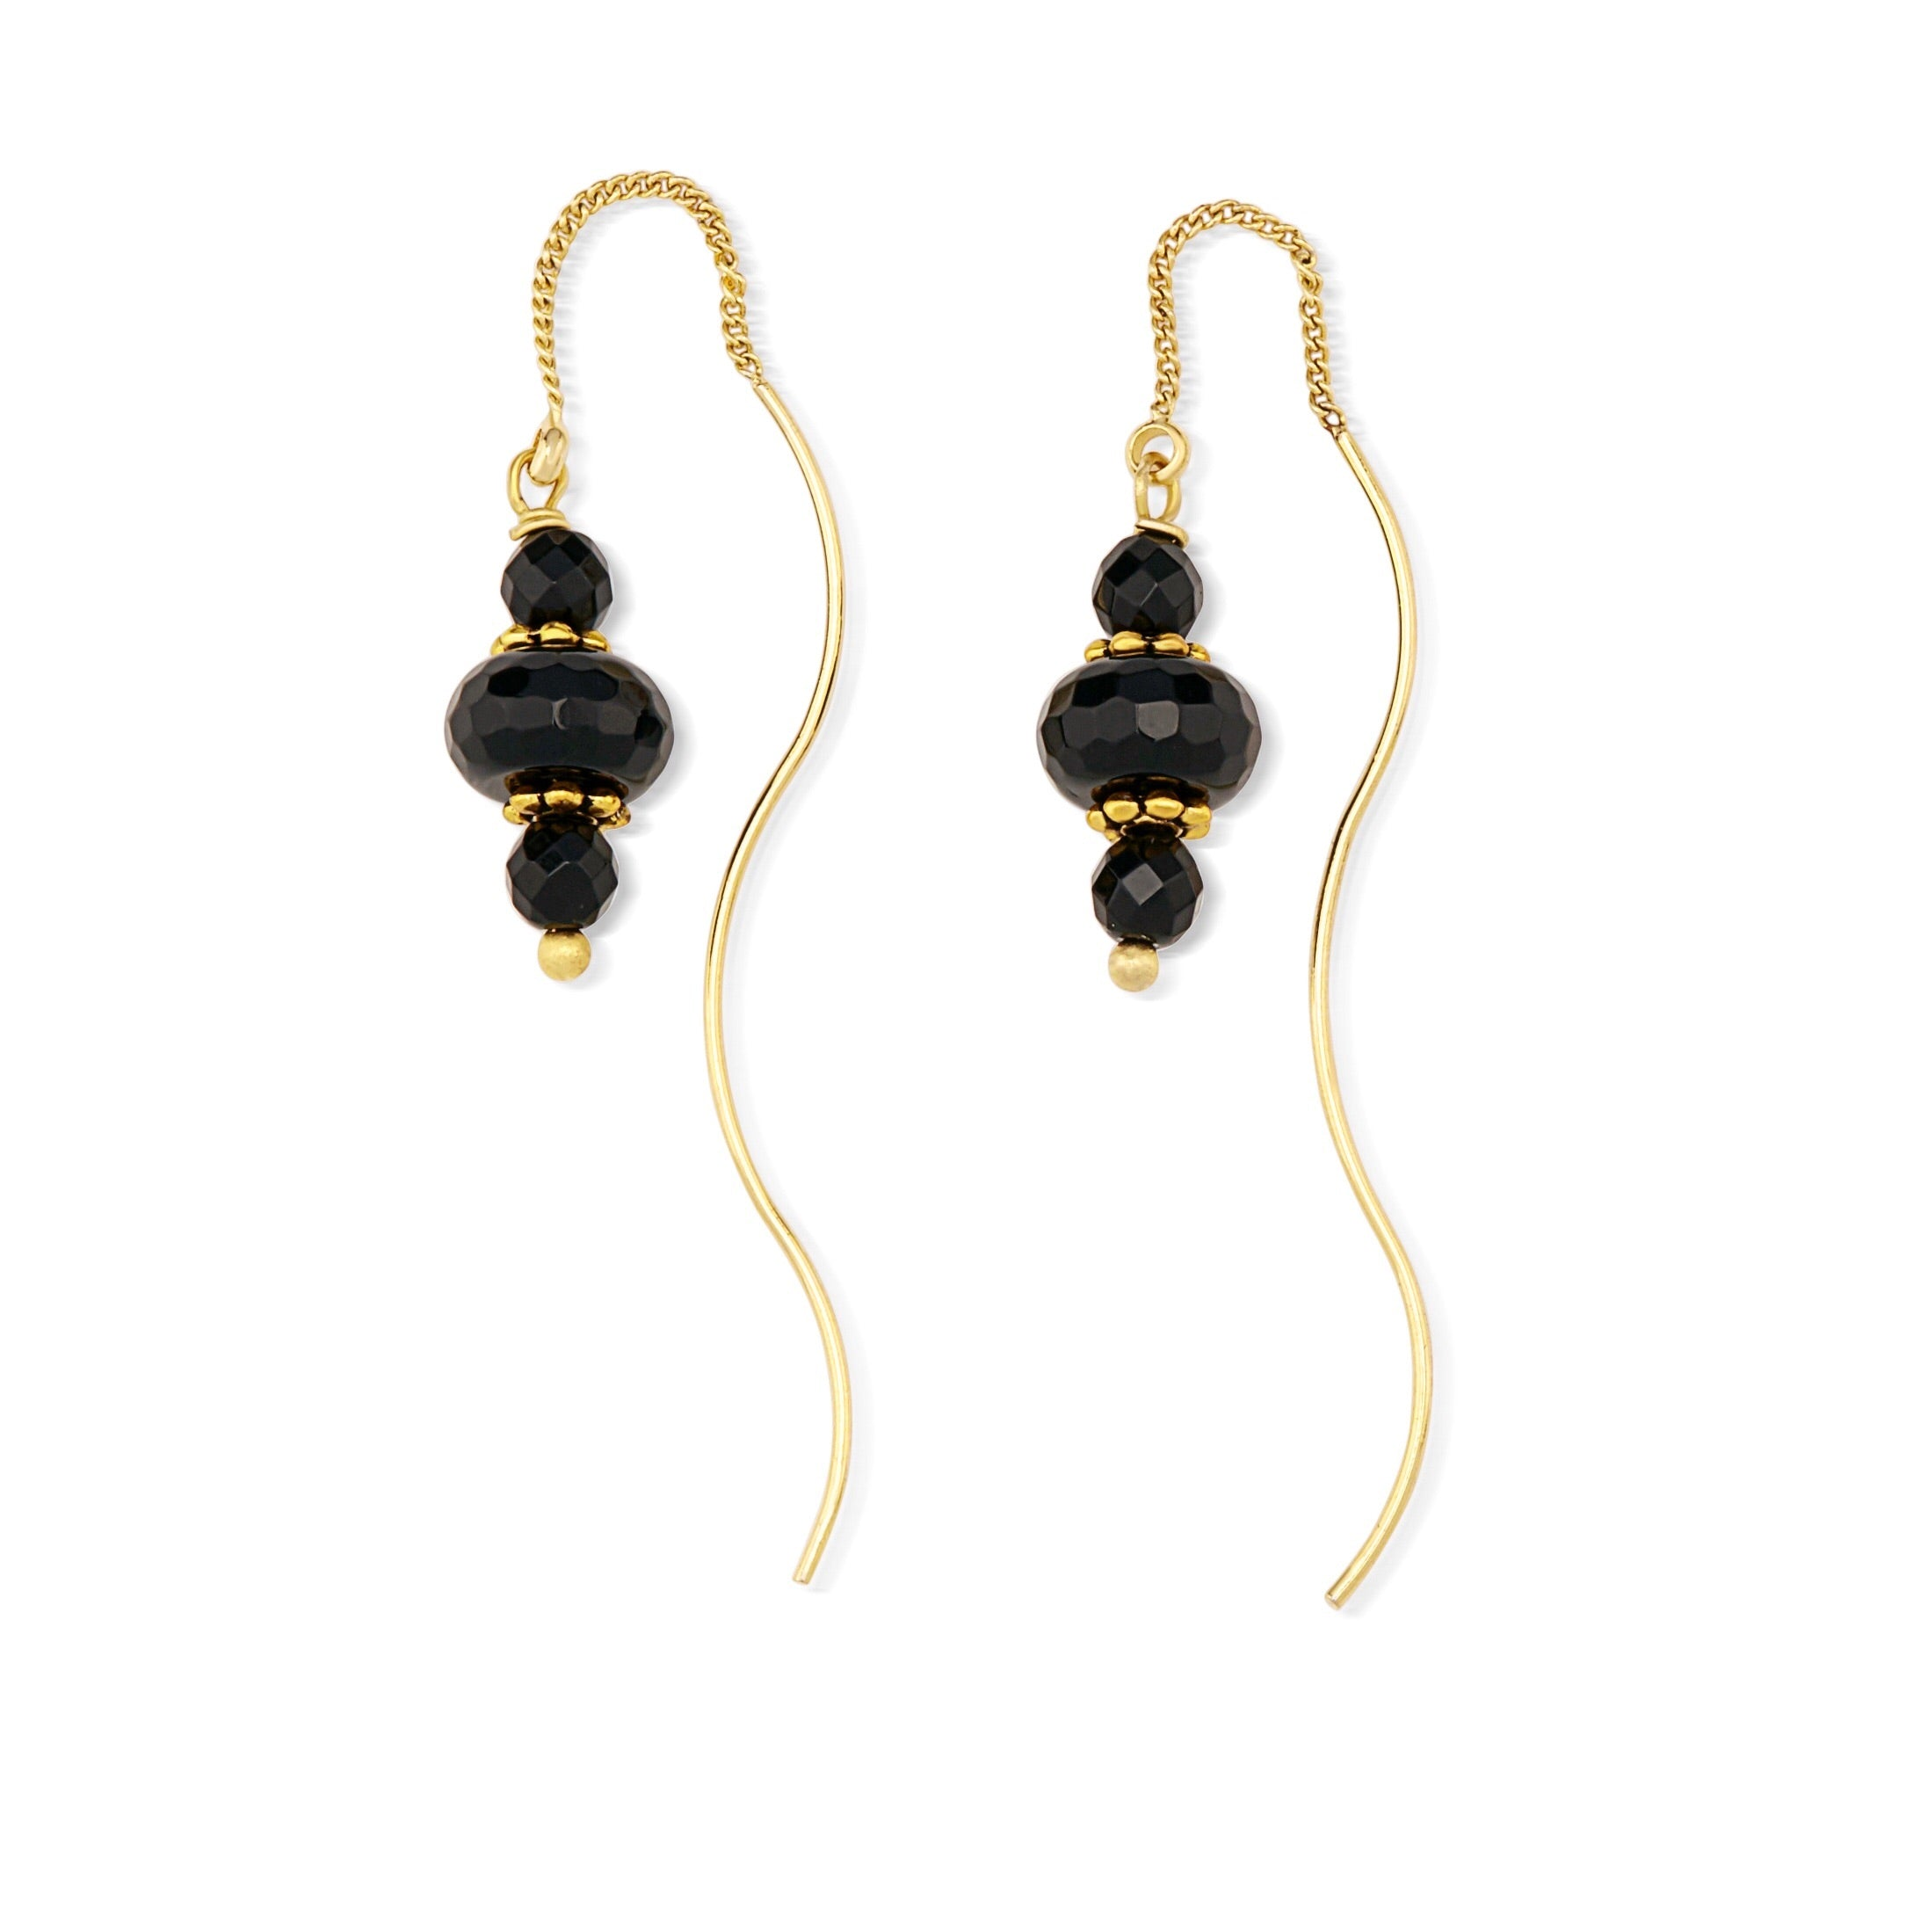 Aria-V Freia thread style earrings handcrafted with facted black agate stones set on brass 16k elcetroplated wires